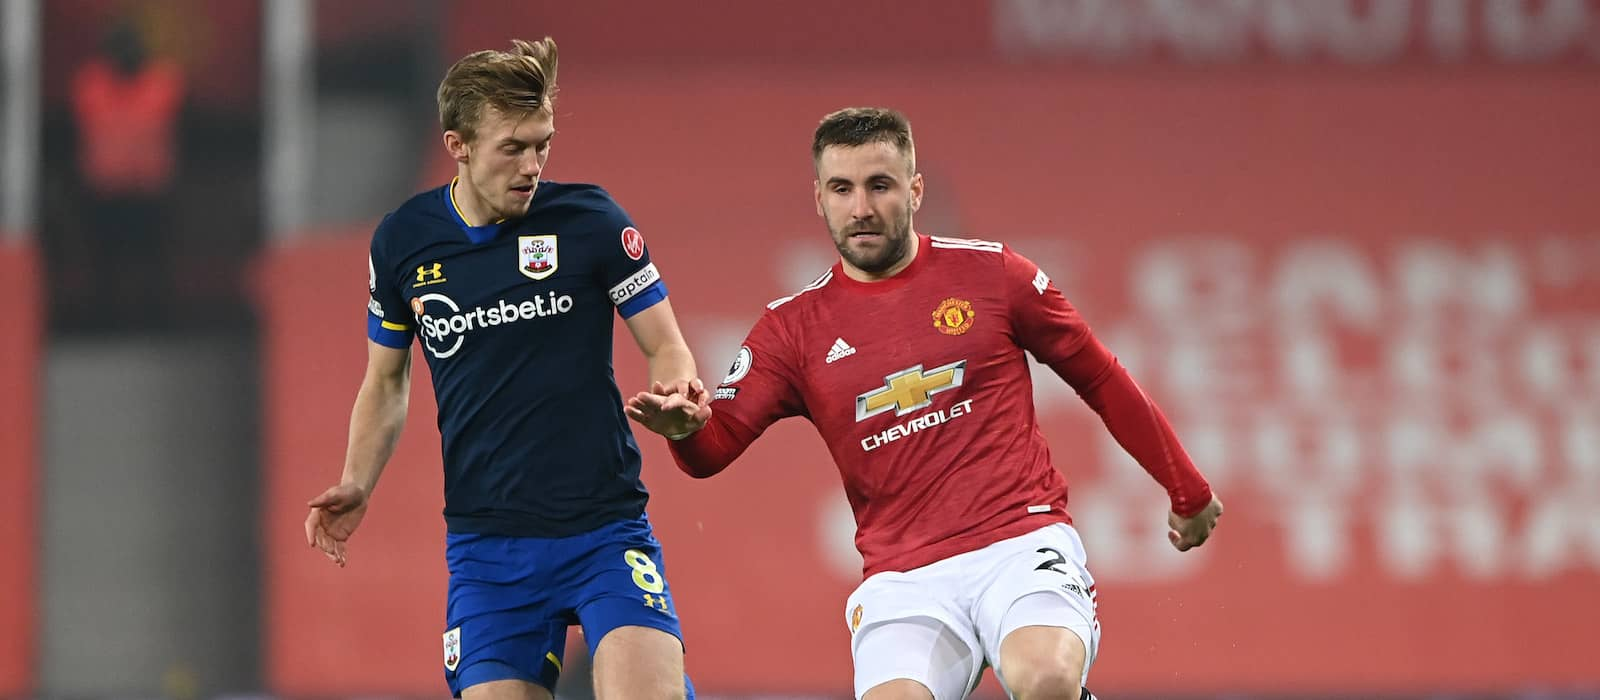 Luke Shaw and Bruno Fernandes match each other vs Southampton